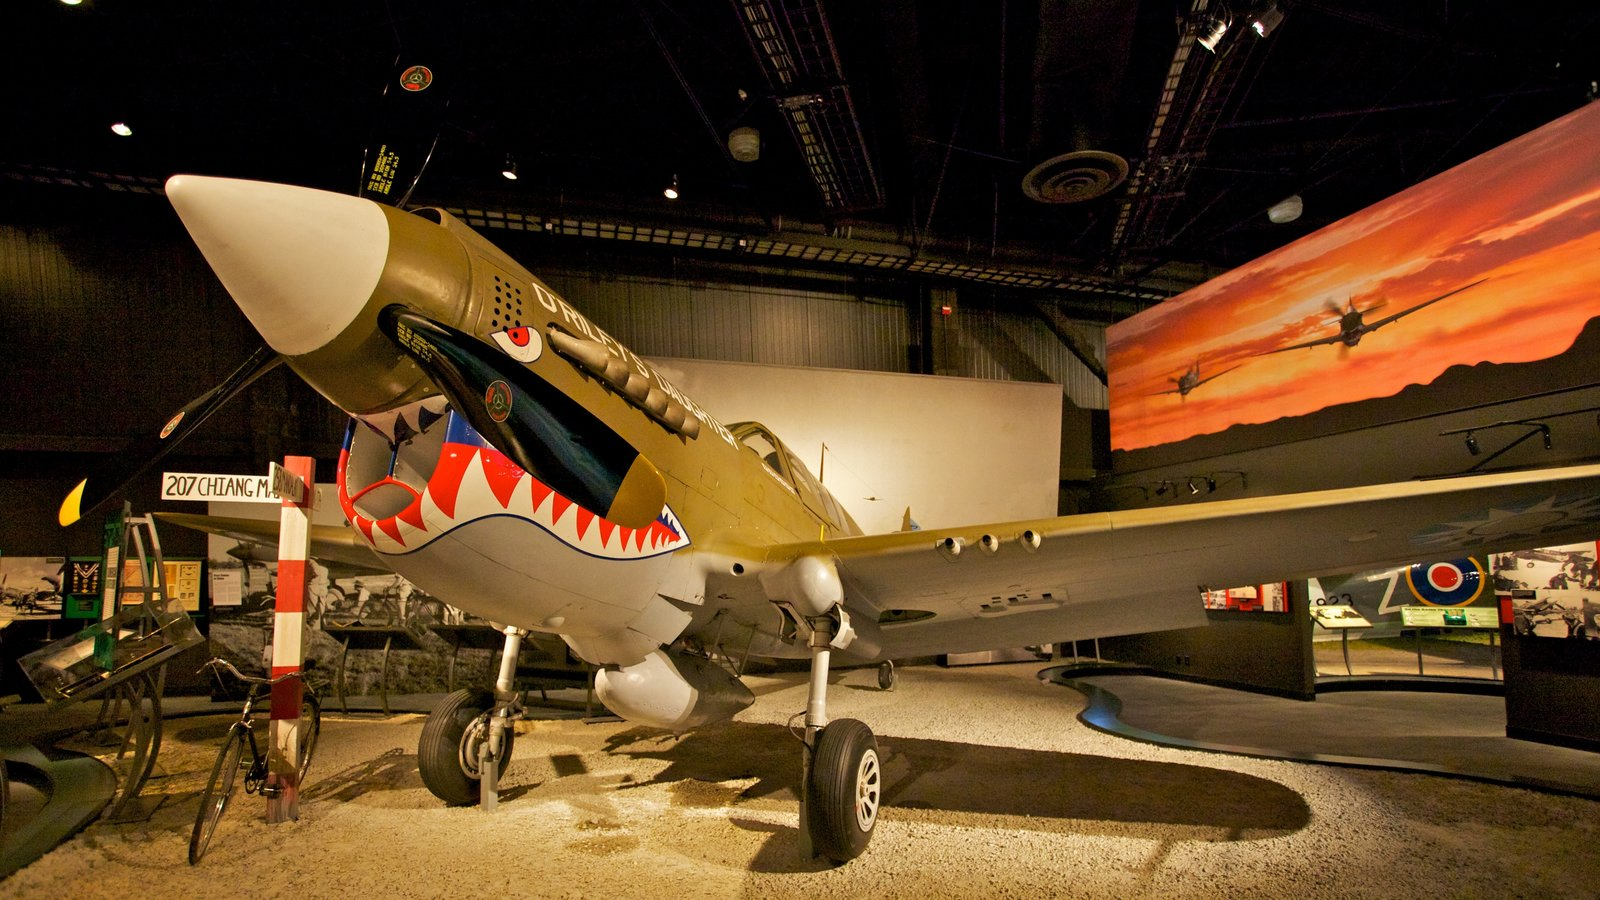 Museum of Flight which includes interior views and aircraft